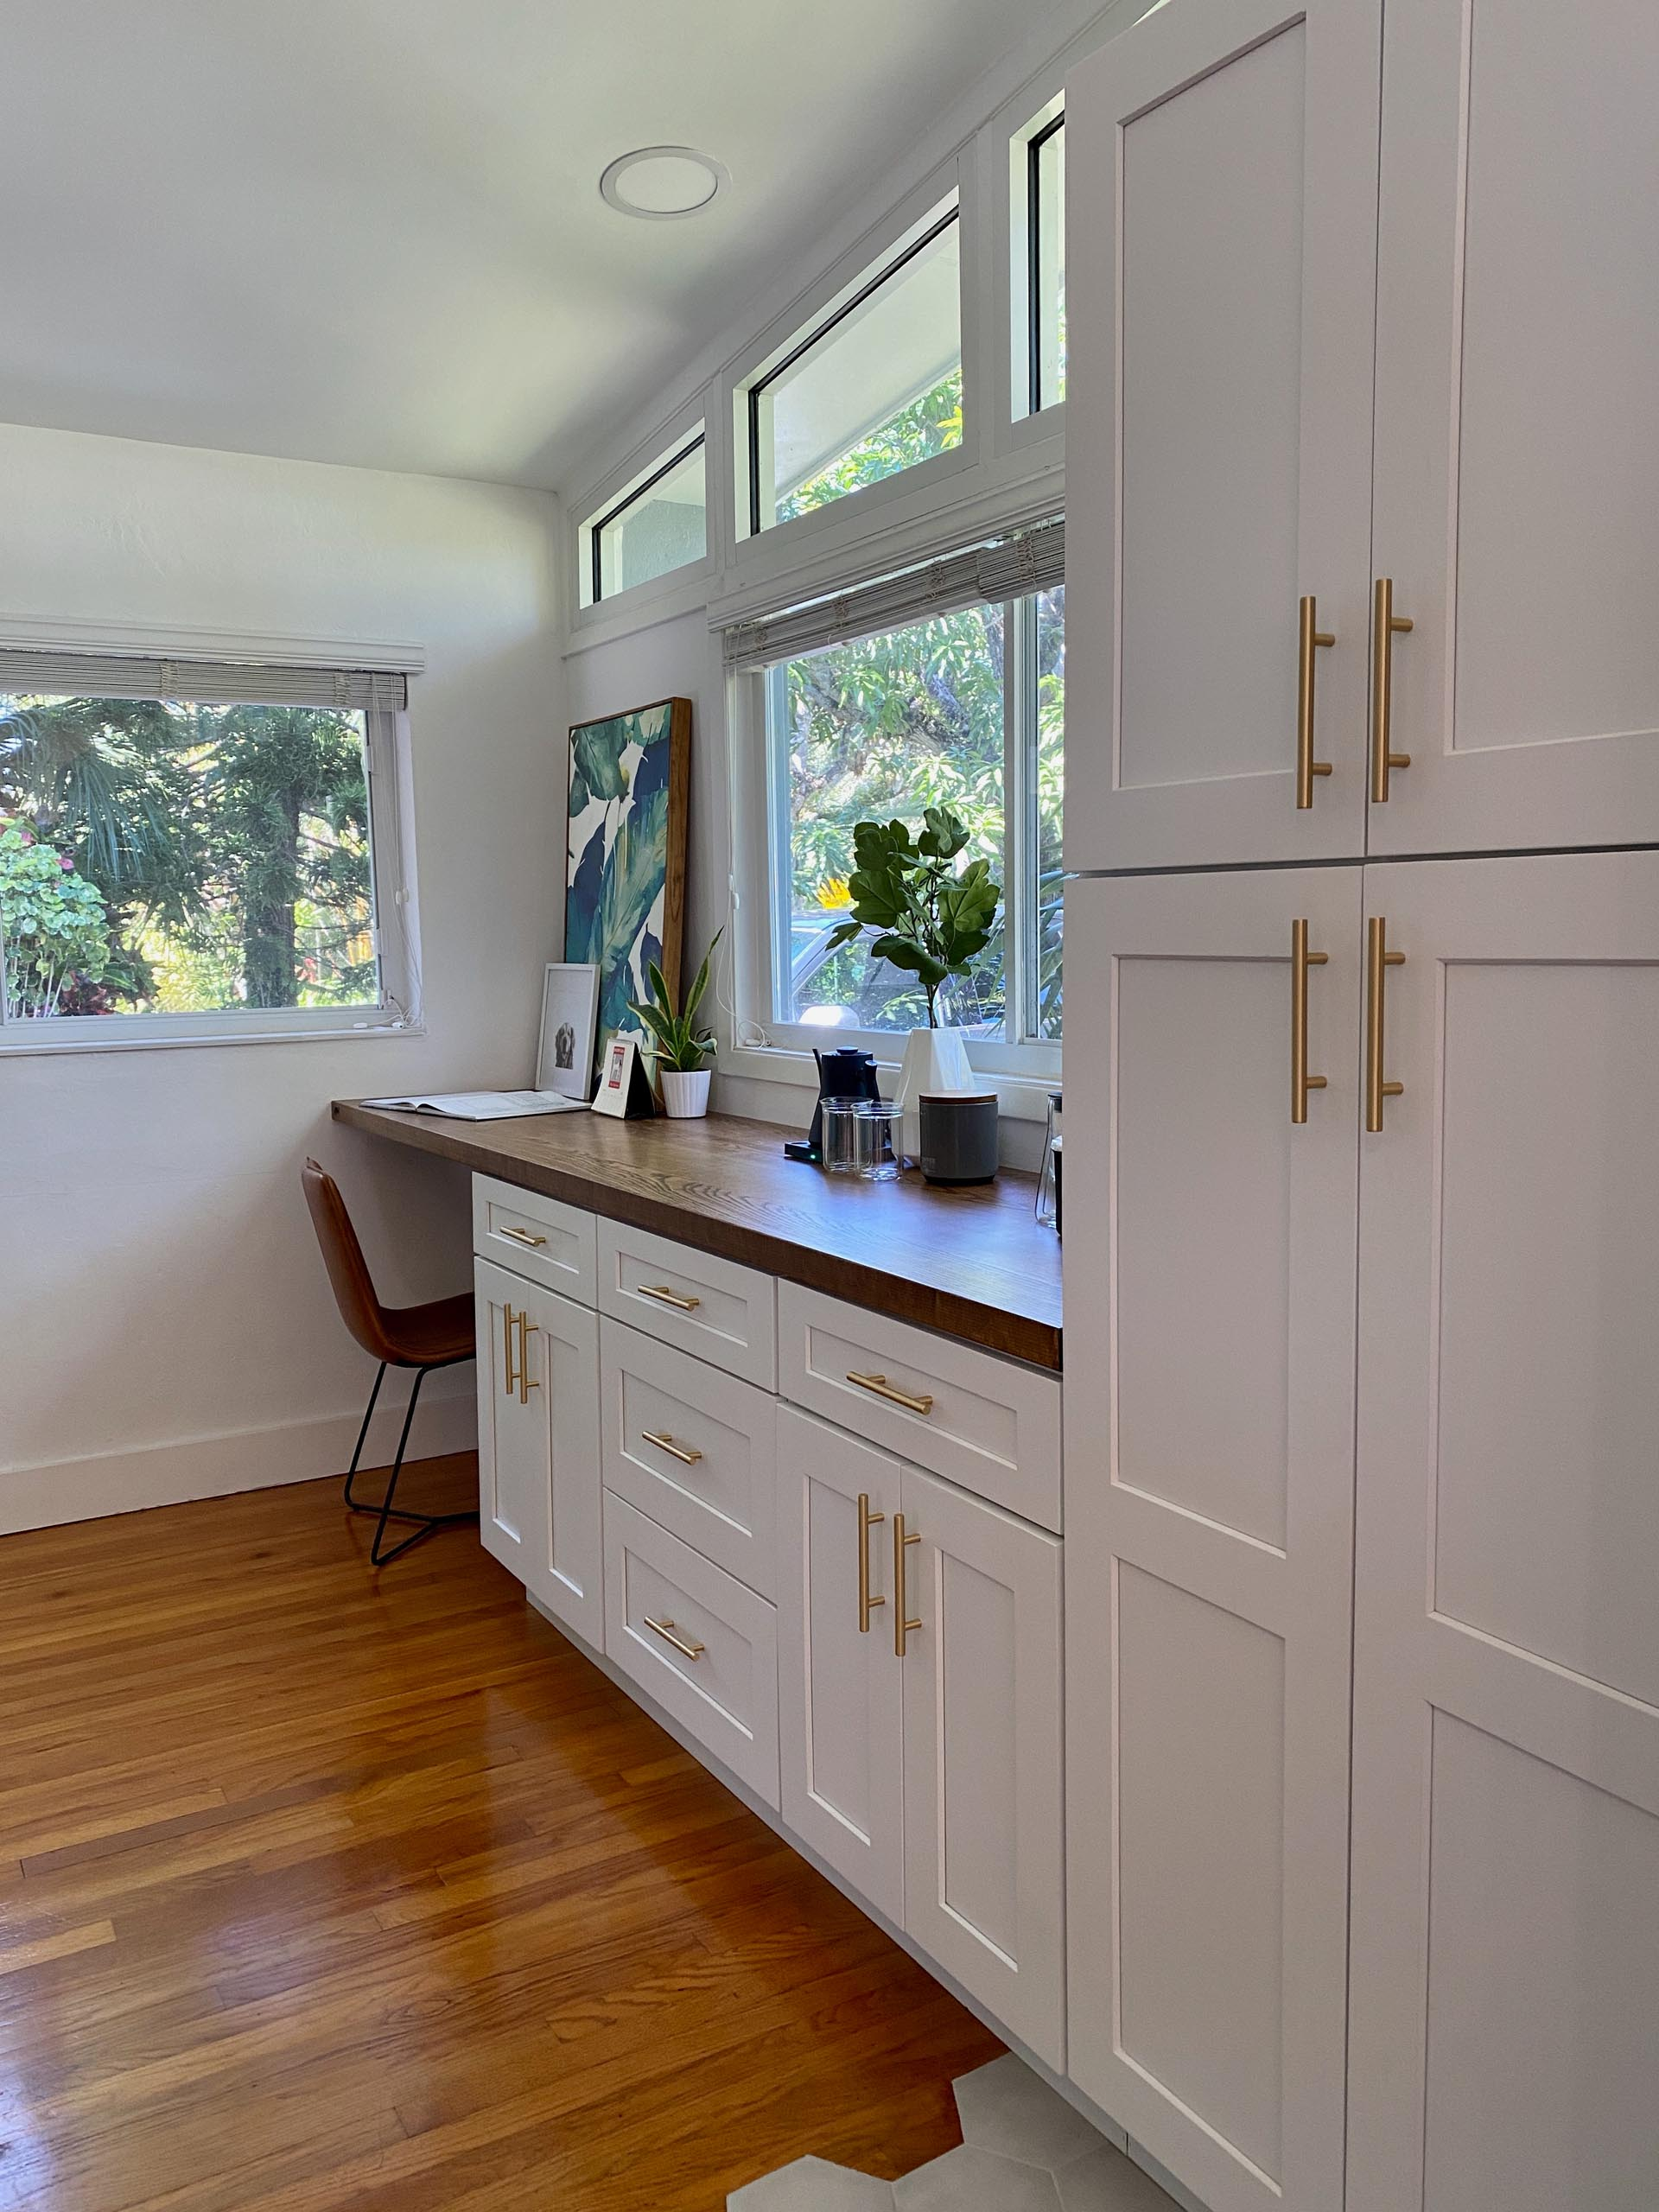 The kitchen cabinets continue along the wall and a wood countertop has been introduced to create a home office and coffee station.